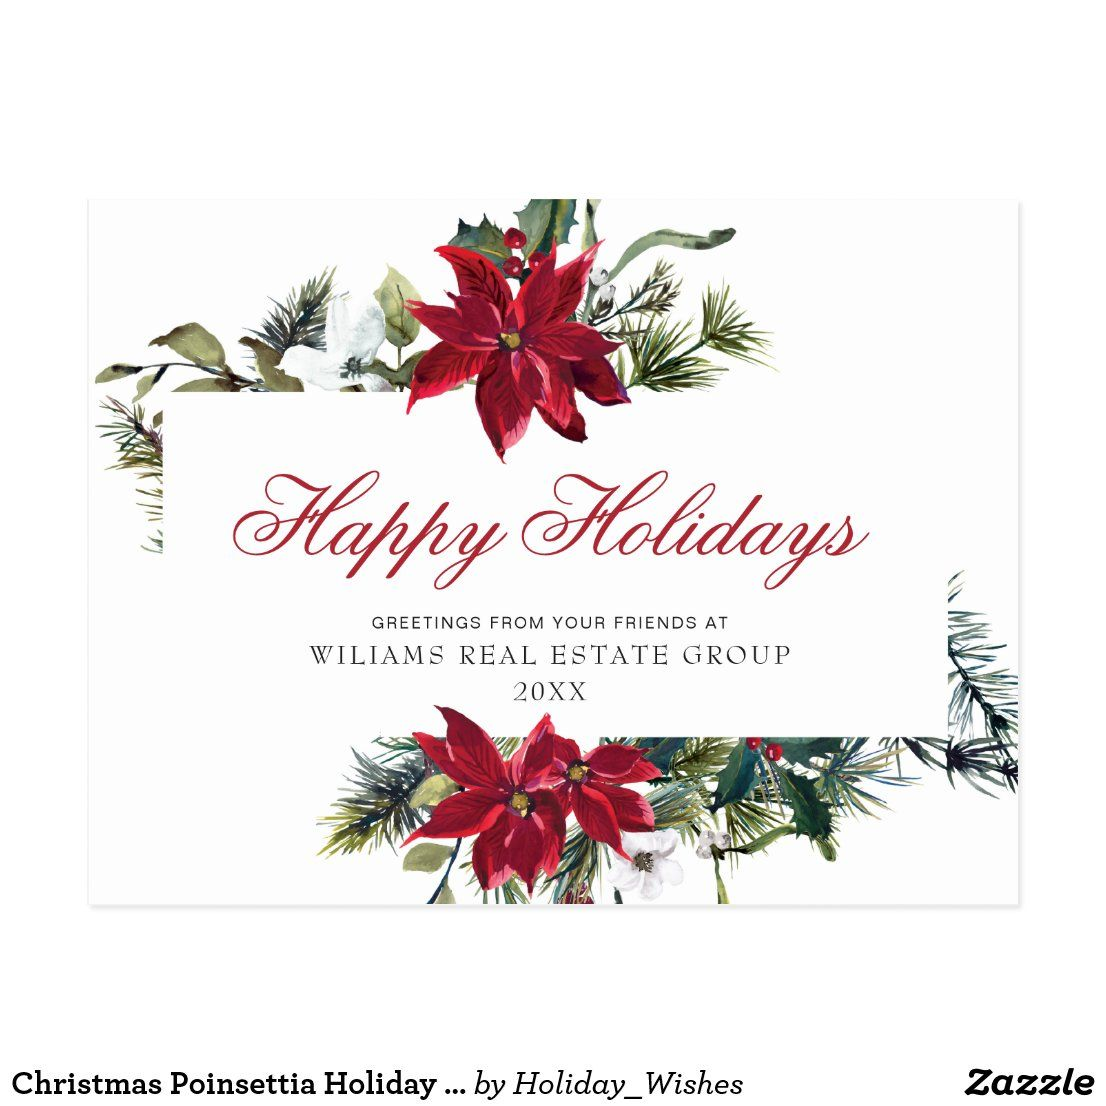 Christmas Poinsettia Holiday Corporate Greeting Postcard #zazzle #zazzlemade #christmas #newyear #customparty #partysupplies #custominvitation #invitations #holidaycards #customdecor #holidays #printondemand #customstationery #invitationtemplate #partyinvitation #partydecor #partydecorations #customgifts